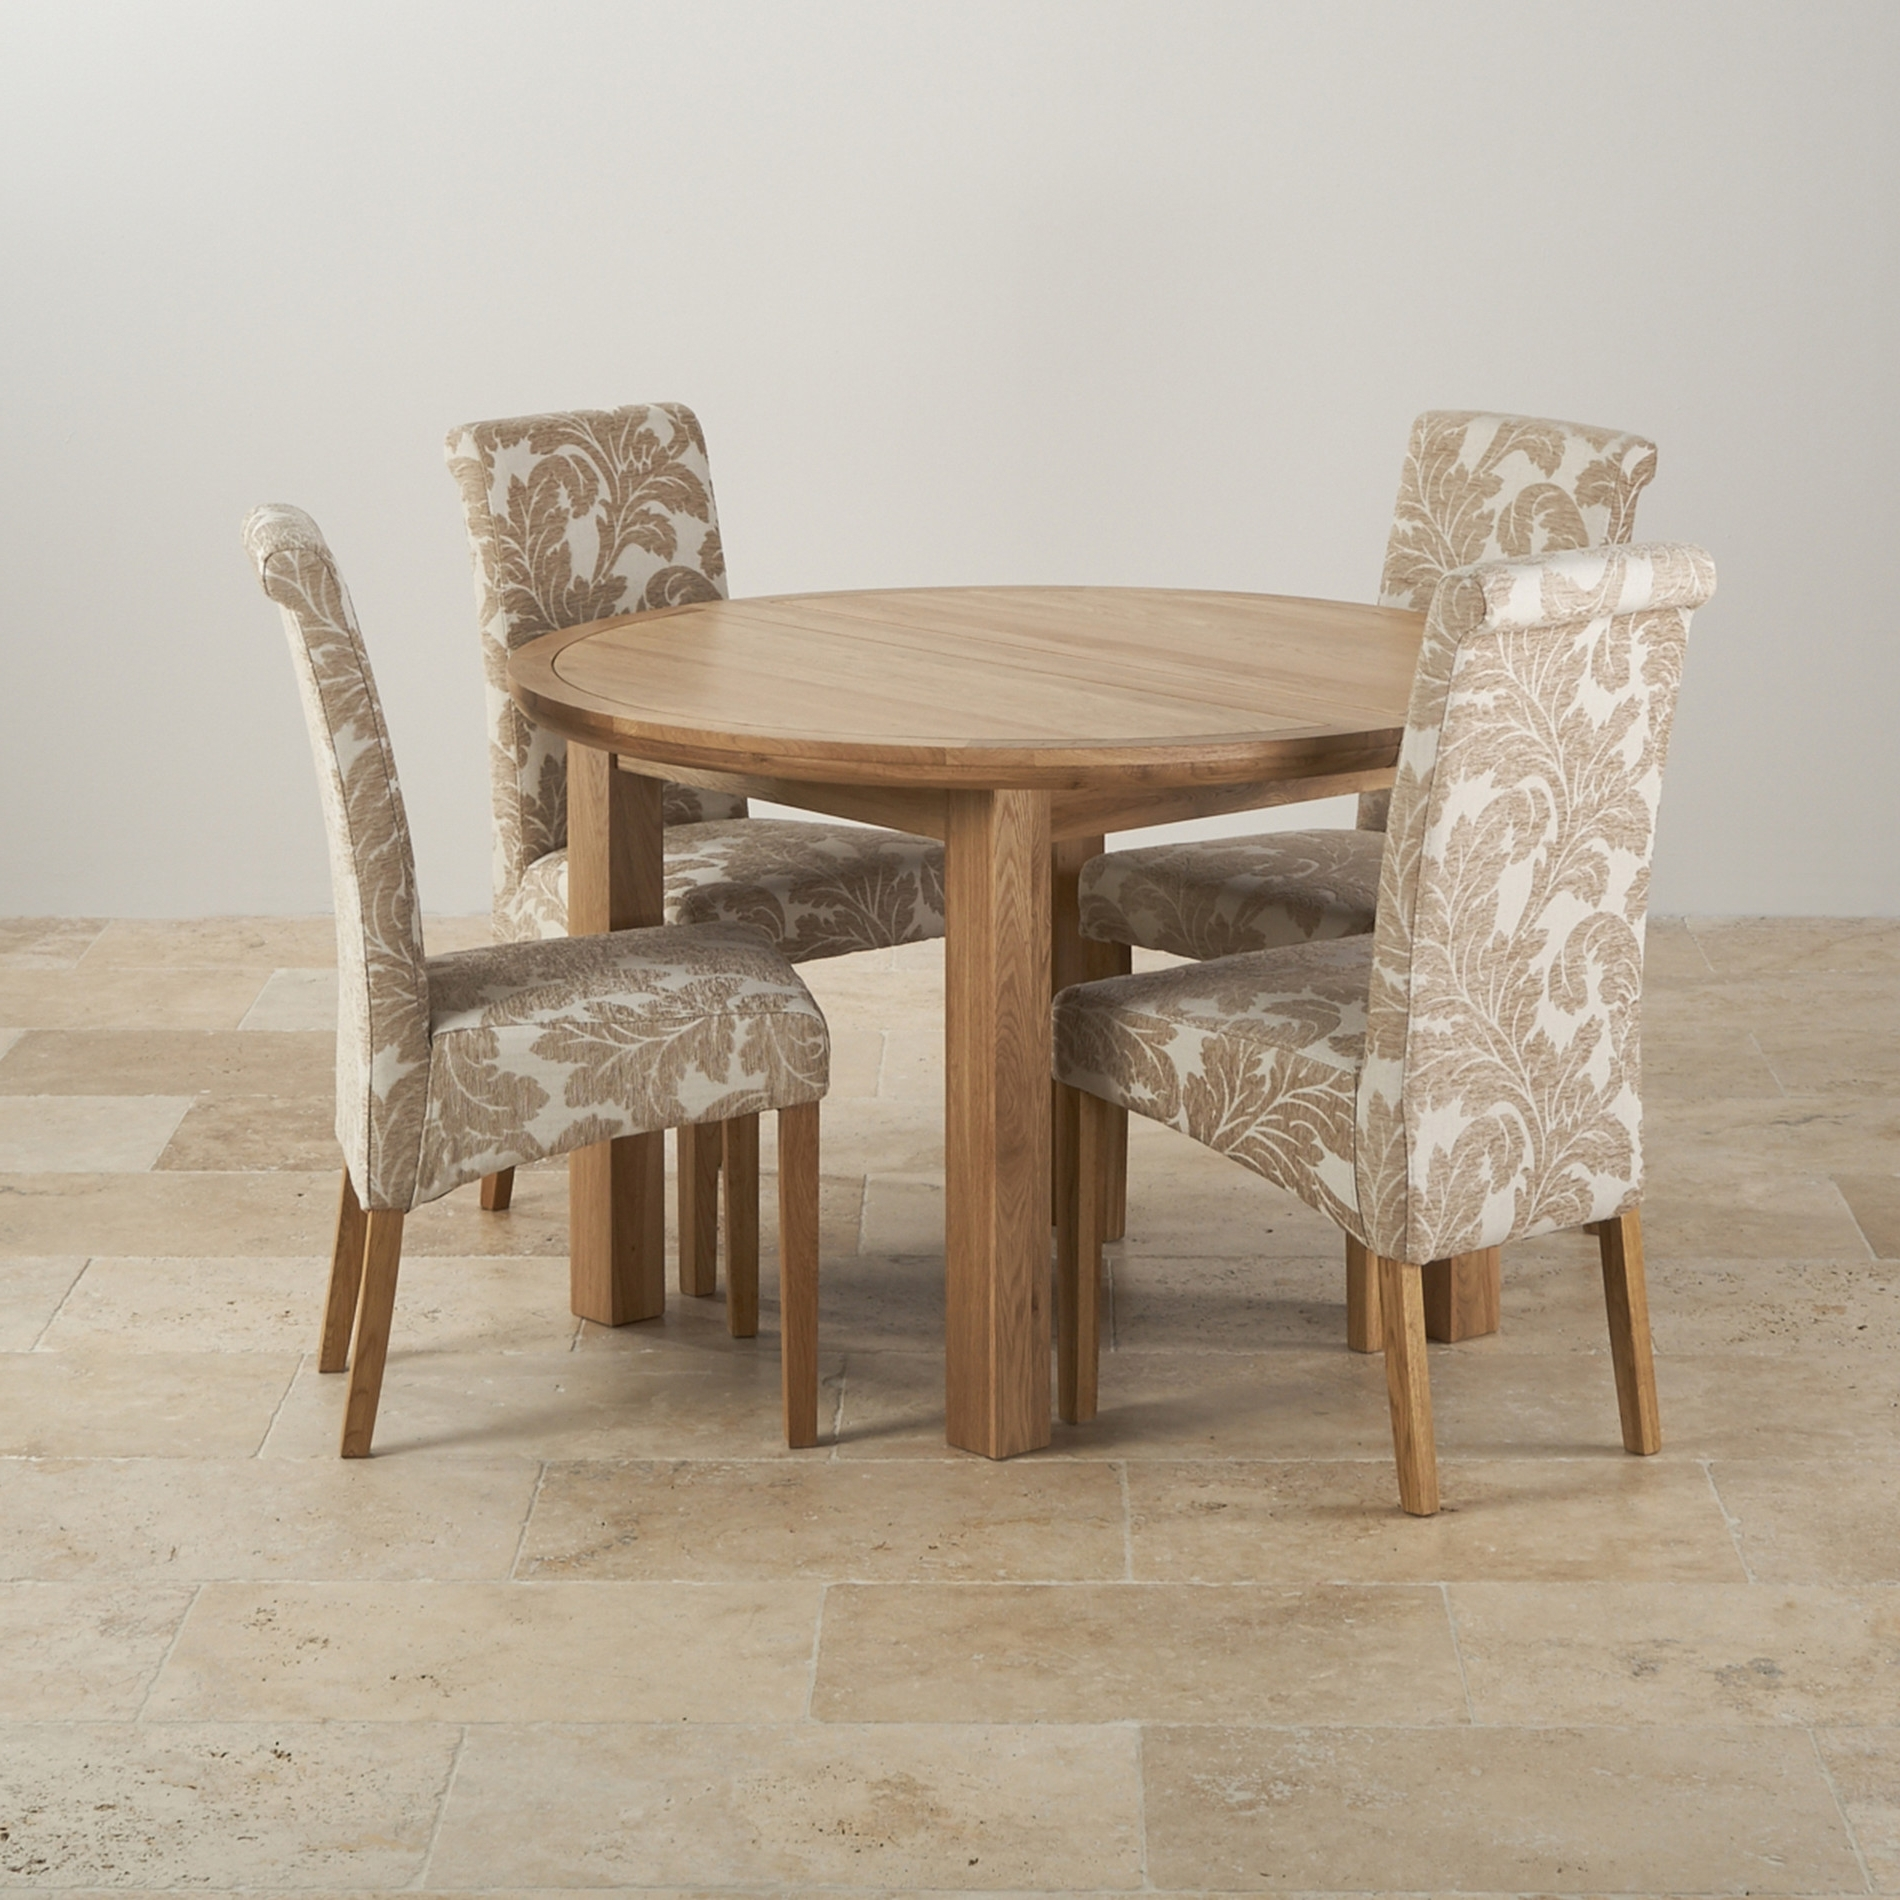 Fashionable Solid Oak Dining Room Chairs 8 Chair Dining Table Throughout Oak Round Dining Tables And Chairs (View 6 of 25)